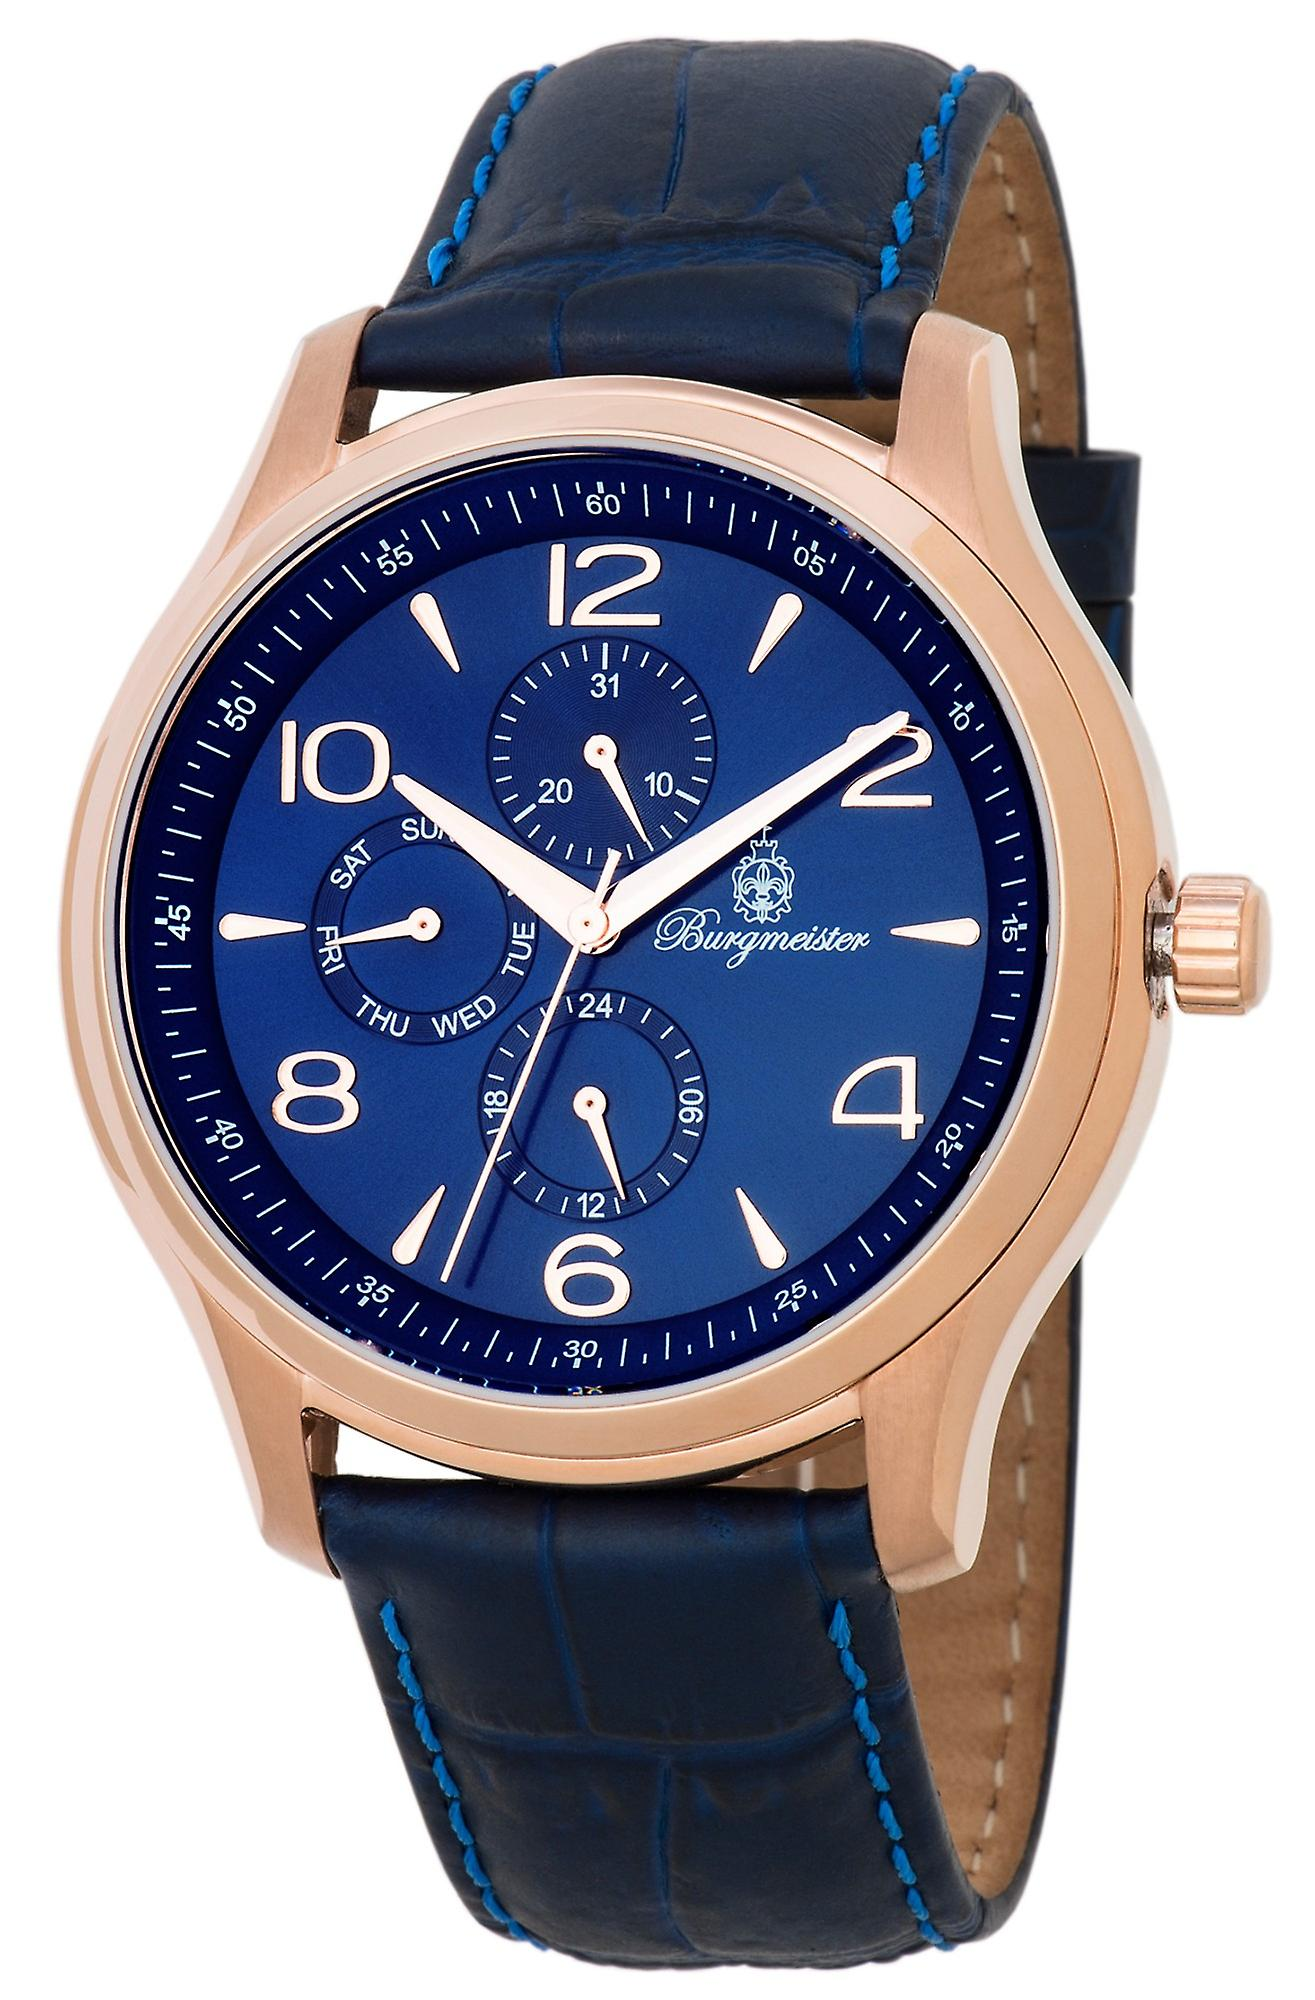 Burgmeister BMT04-333 Montpellier, Gents watch, Analogue display, Quartz with Seiko Movement - Water resistant, Stylish leather strap, Classic men's watch